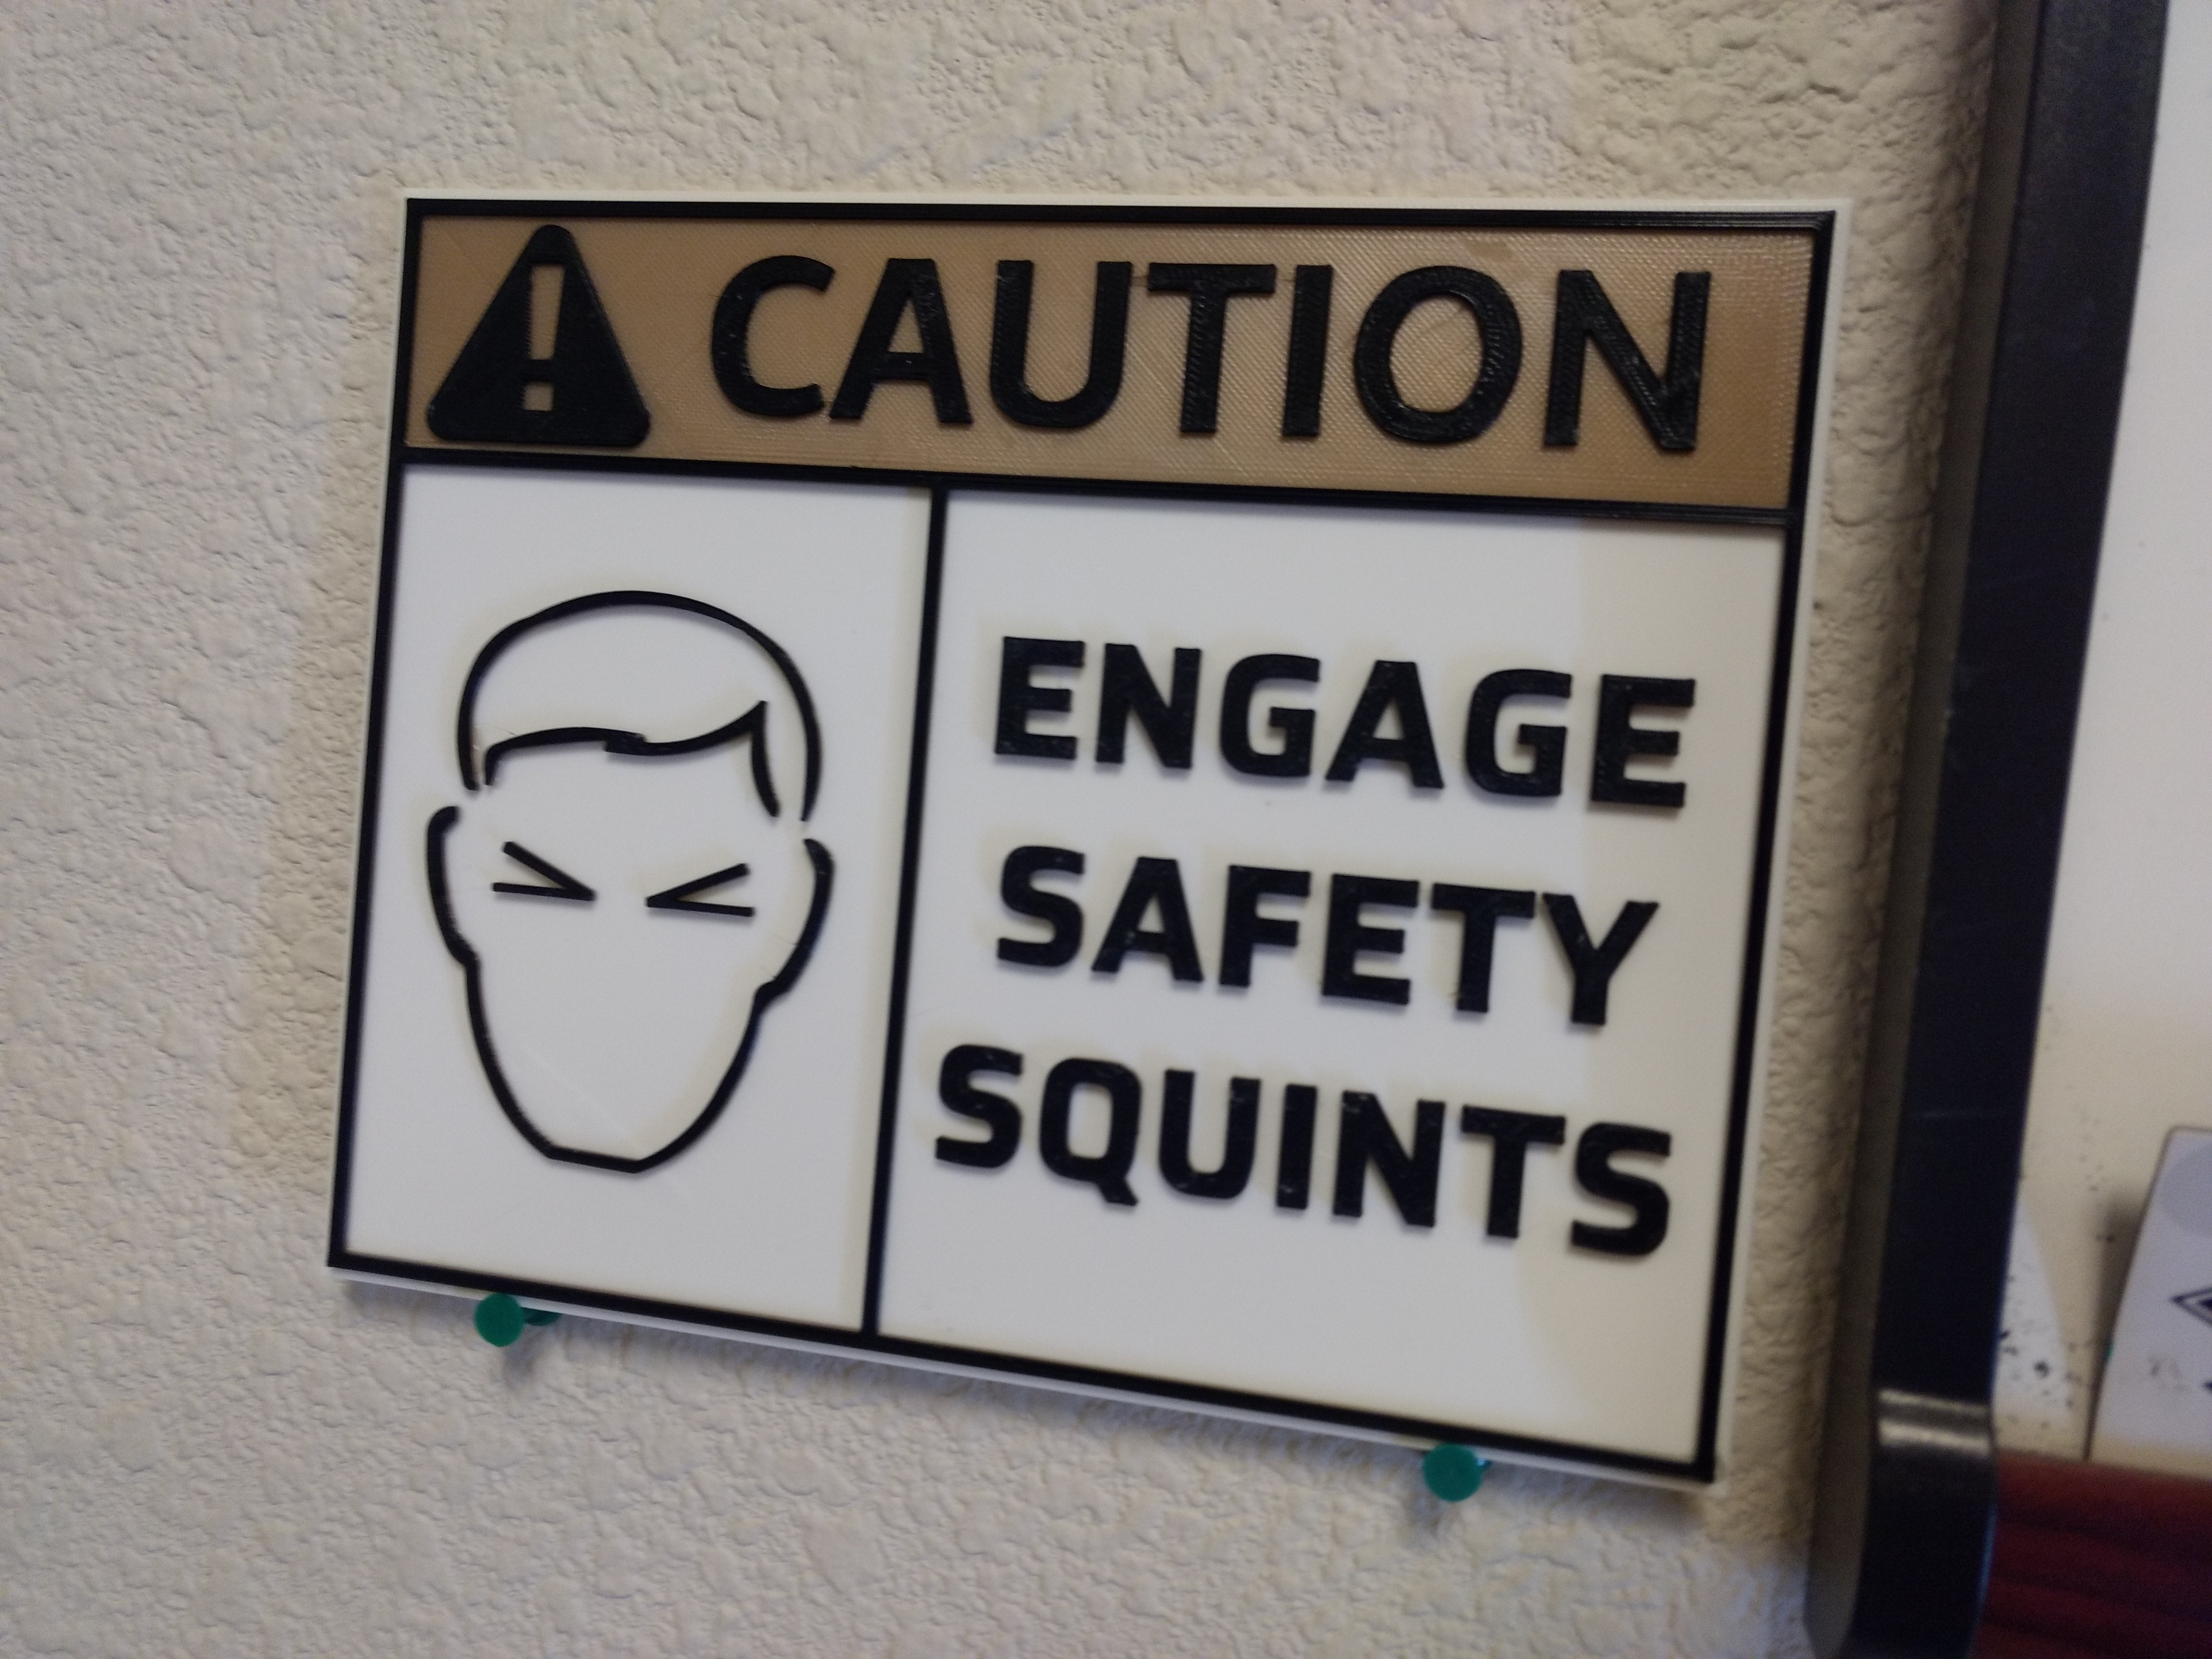 3-Color Safety Squints Sign